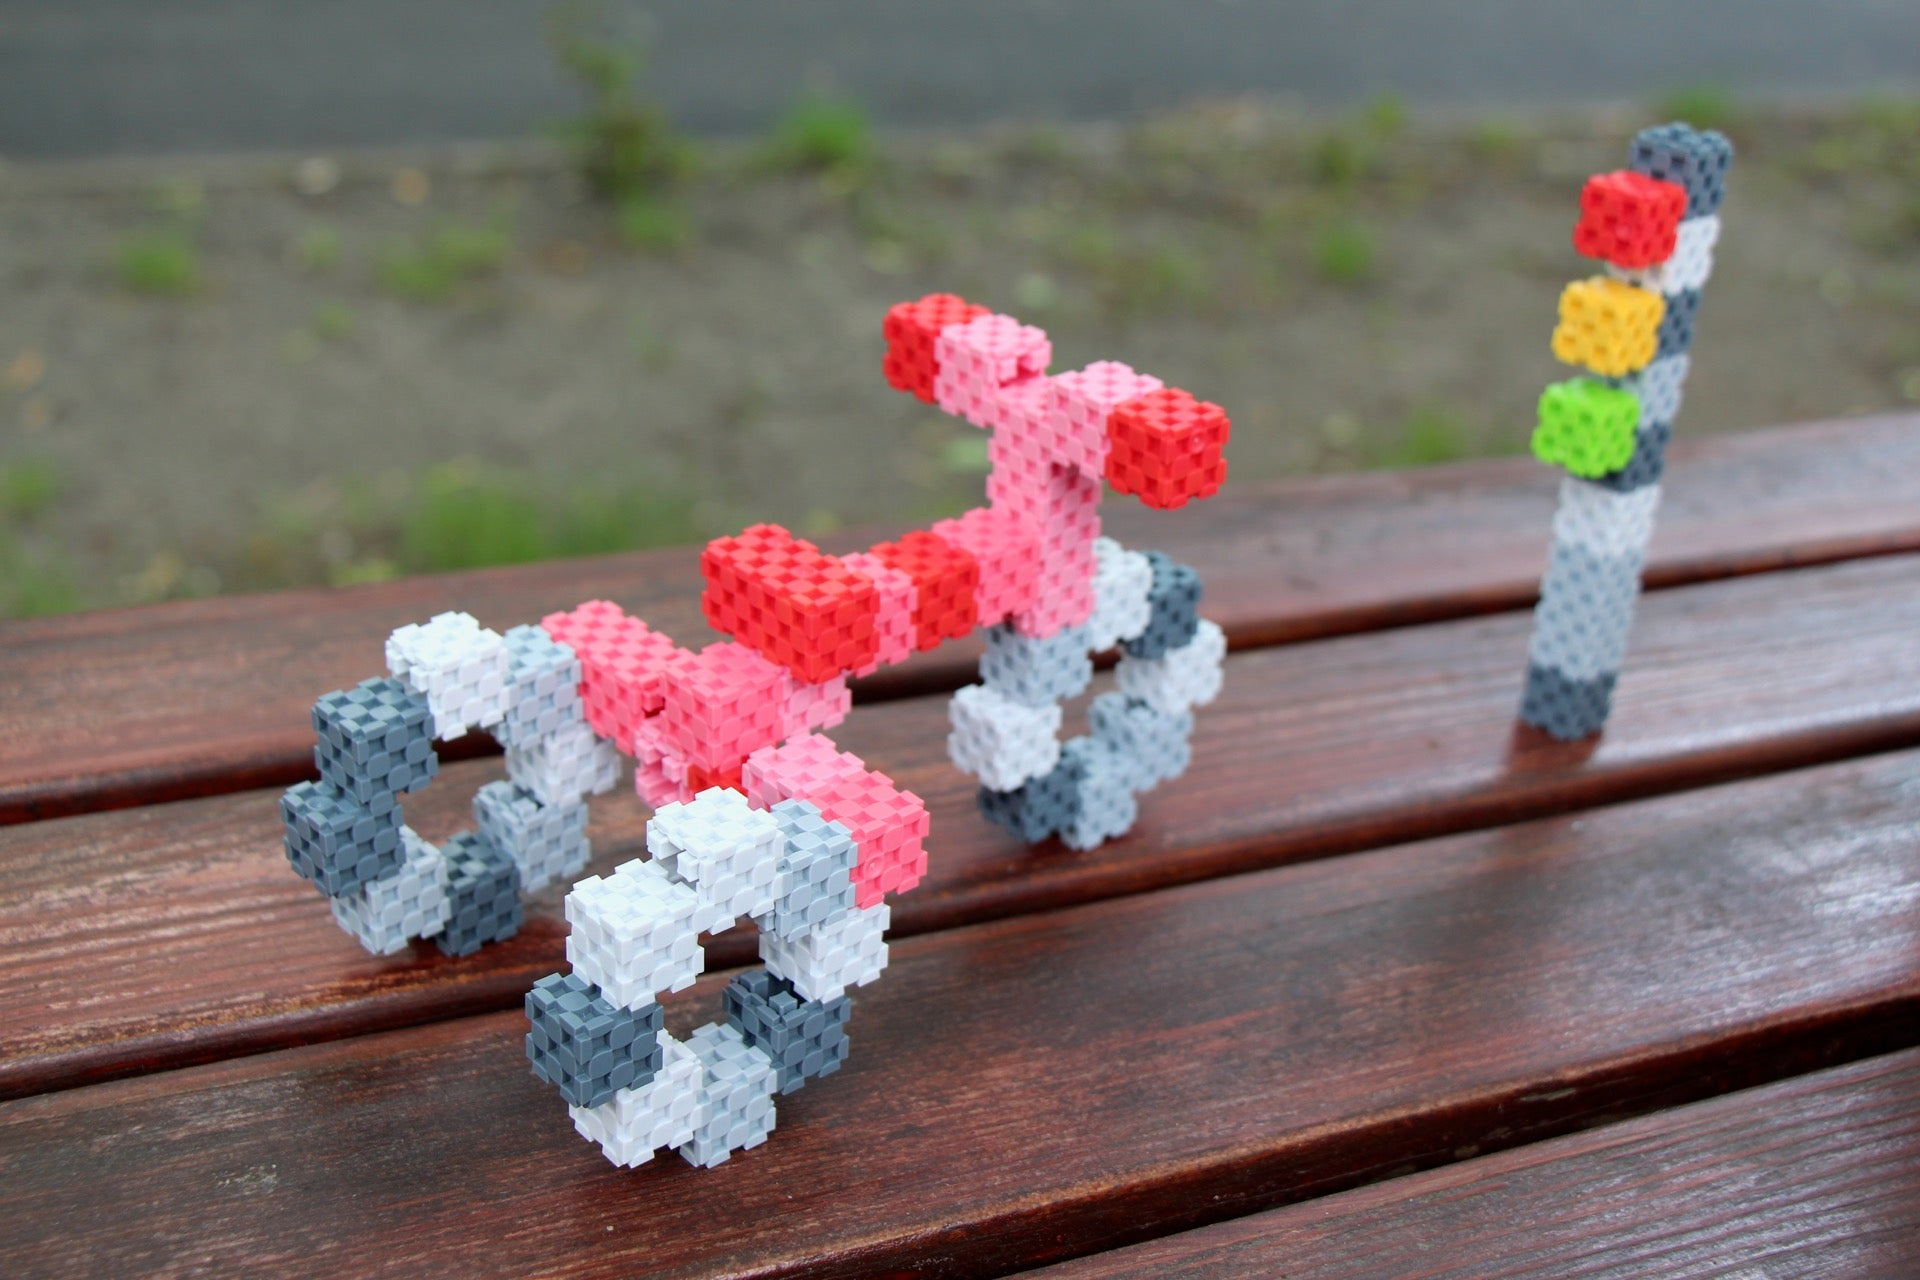 tricycle made with Lini cubes